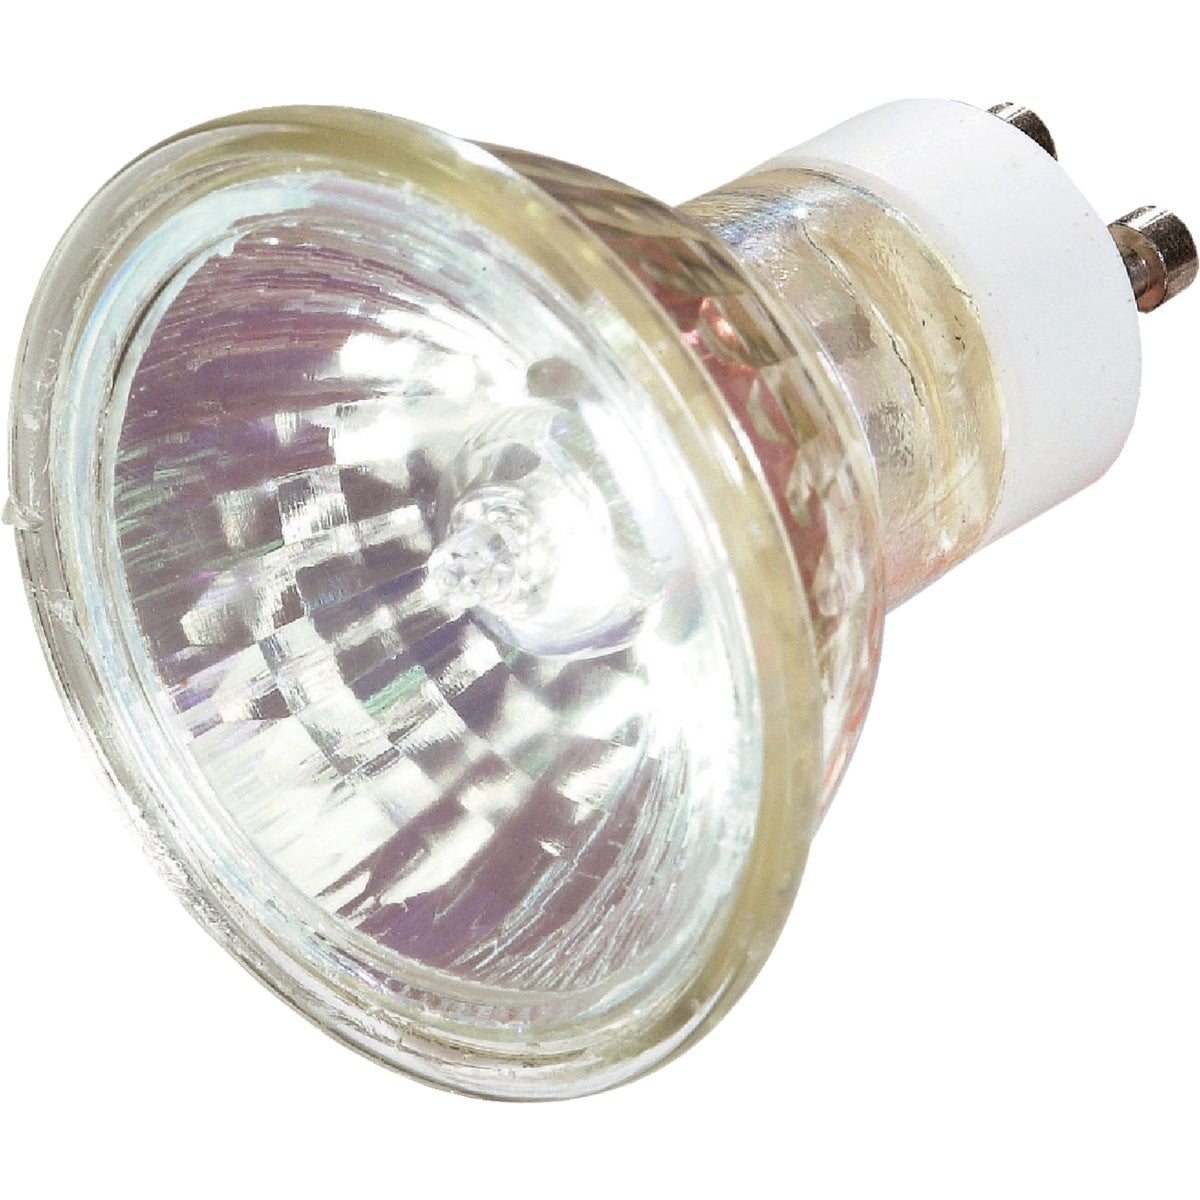 20W MR16 HALOGEN BULB - 16753 by G E Lighting